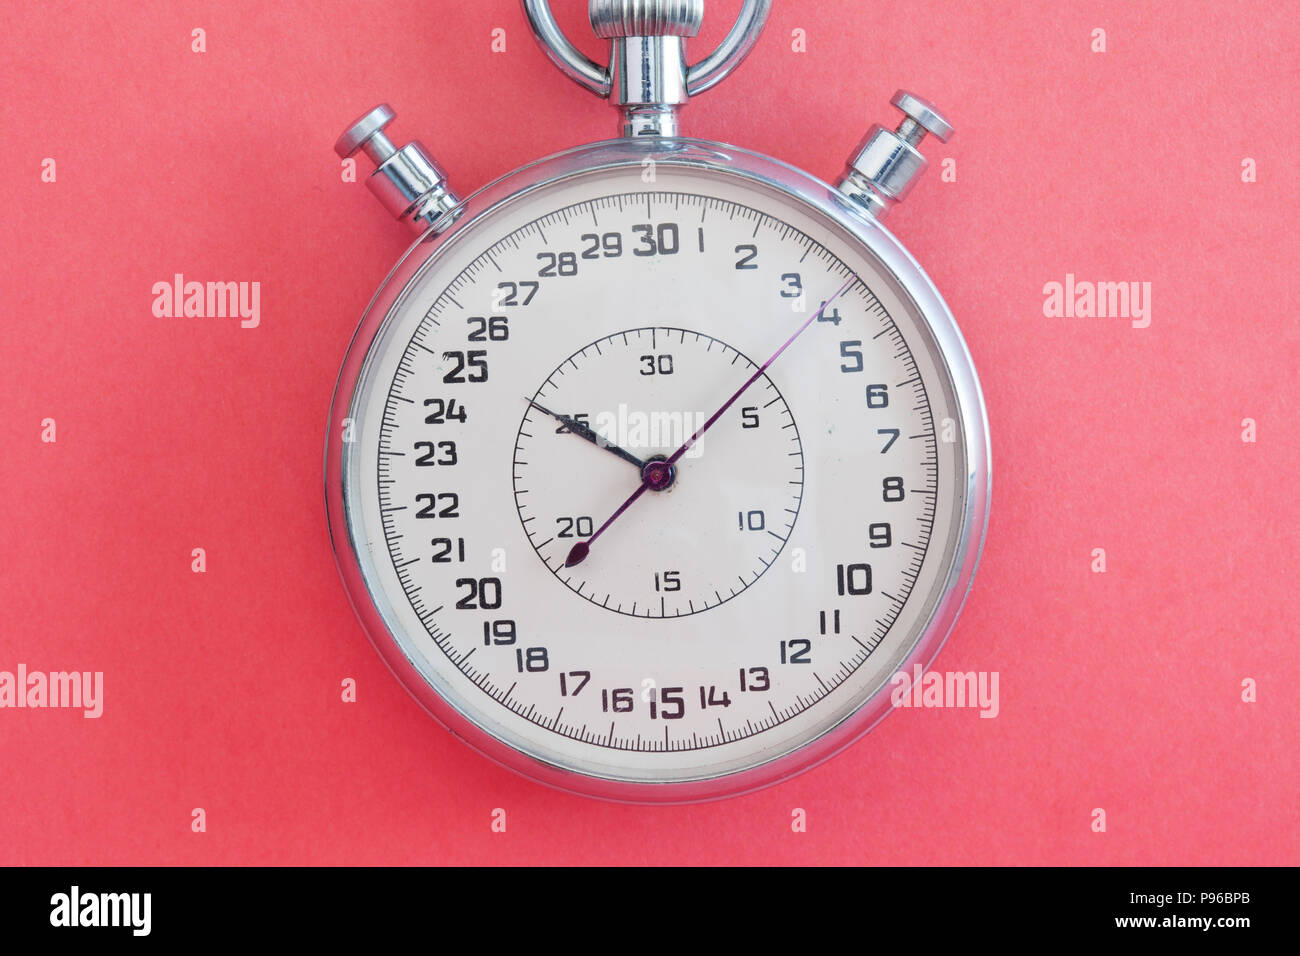 Retro style stopwatch chronometer on pink paper textured background. Sport competition time management concept. Macro view, soft focus - Stock Image